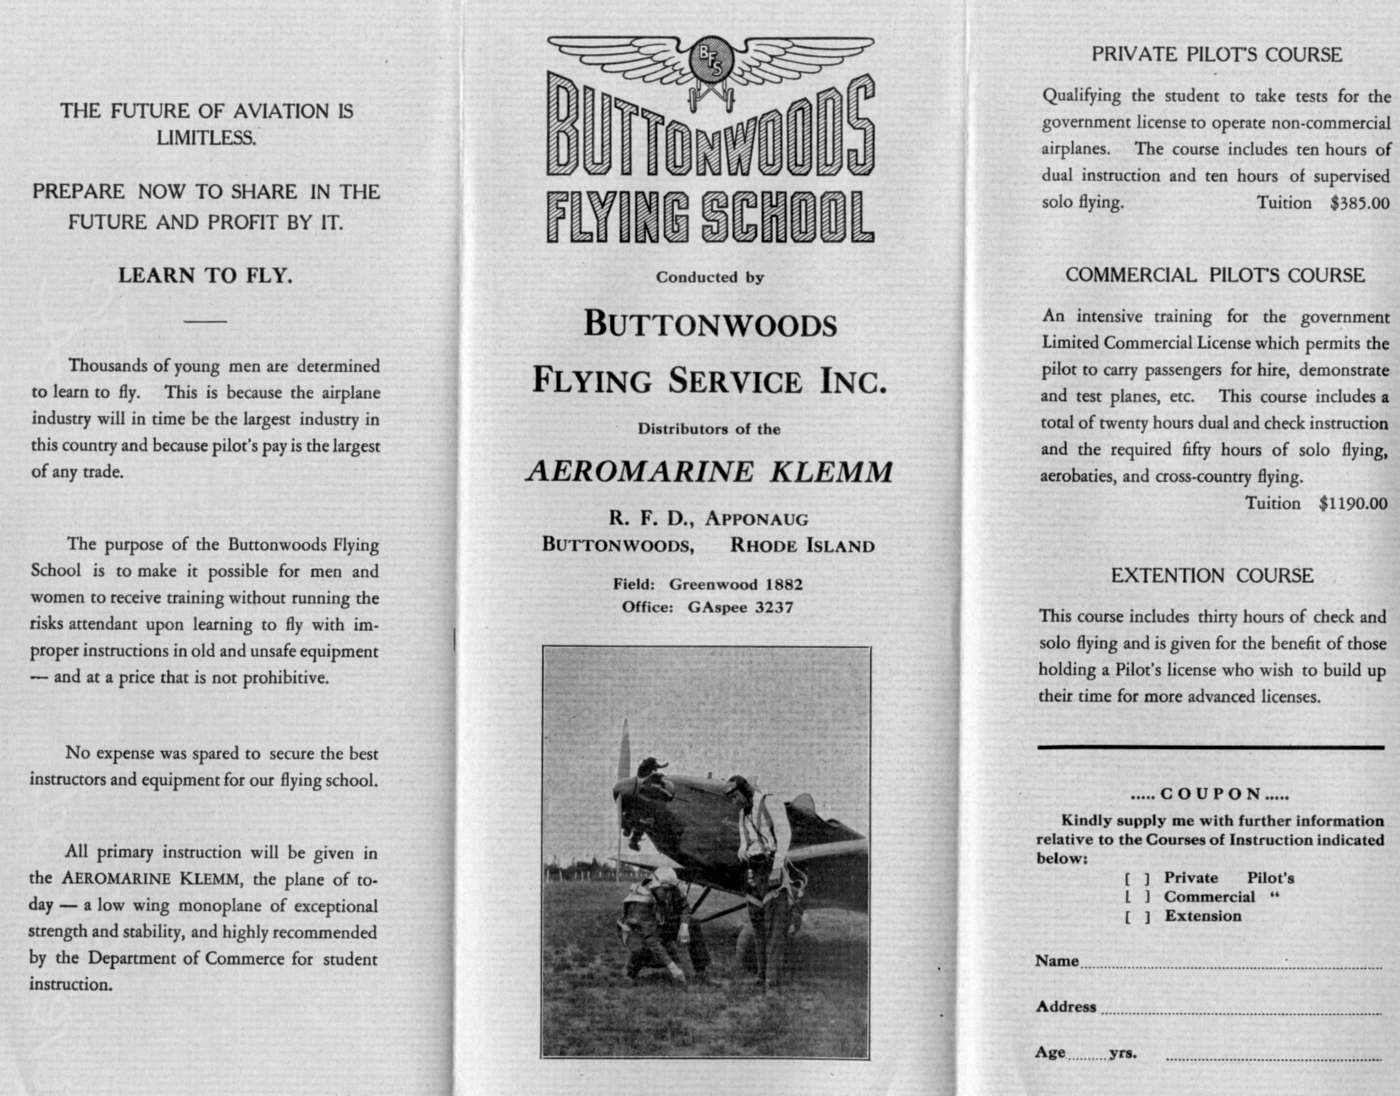 Abandoned little known airfields rhode island a circa 1930s brochure for the buttonwoods flying school courtesy of tom heitzman nvjuhfo Images